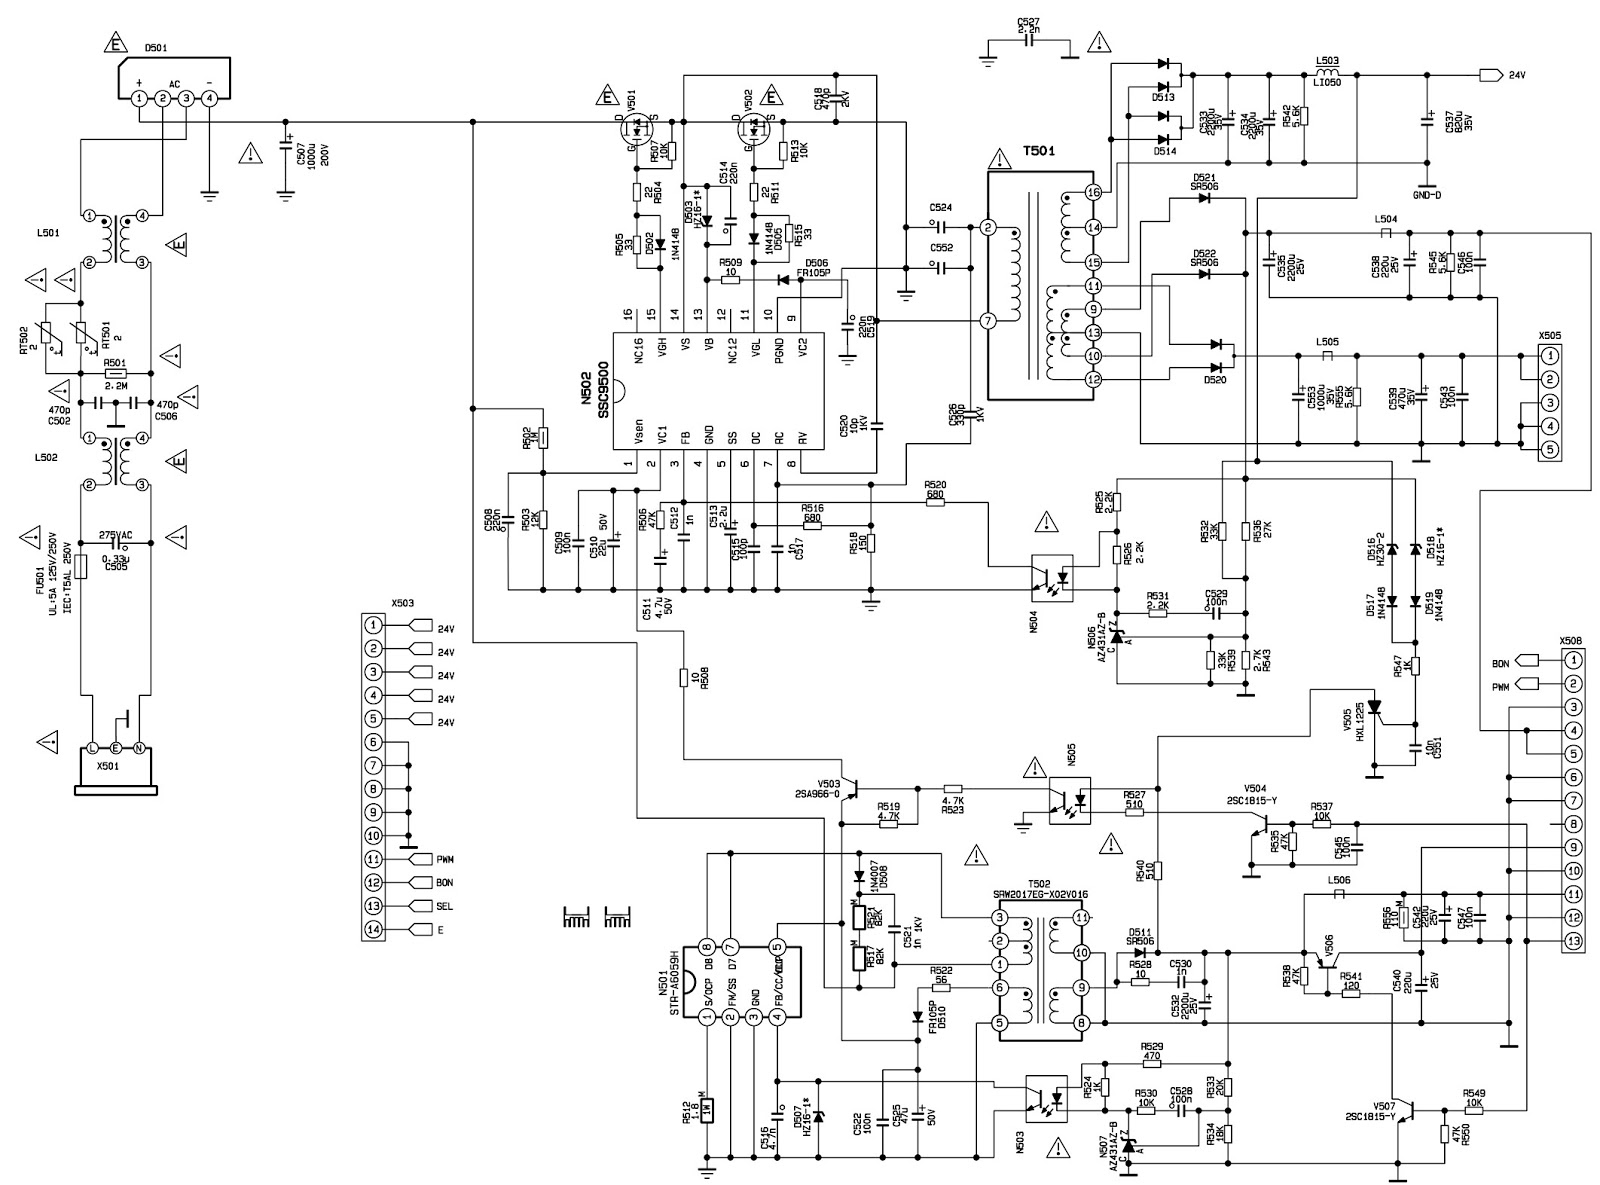 Xoceco And Dynex Dx 32l150a11 Initialization Smps Schematic Service Mode Wb Adjustment And